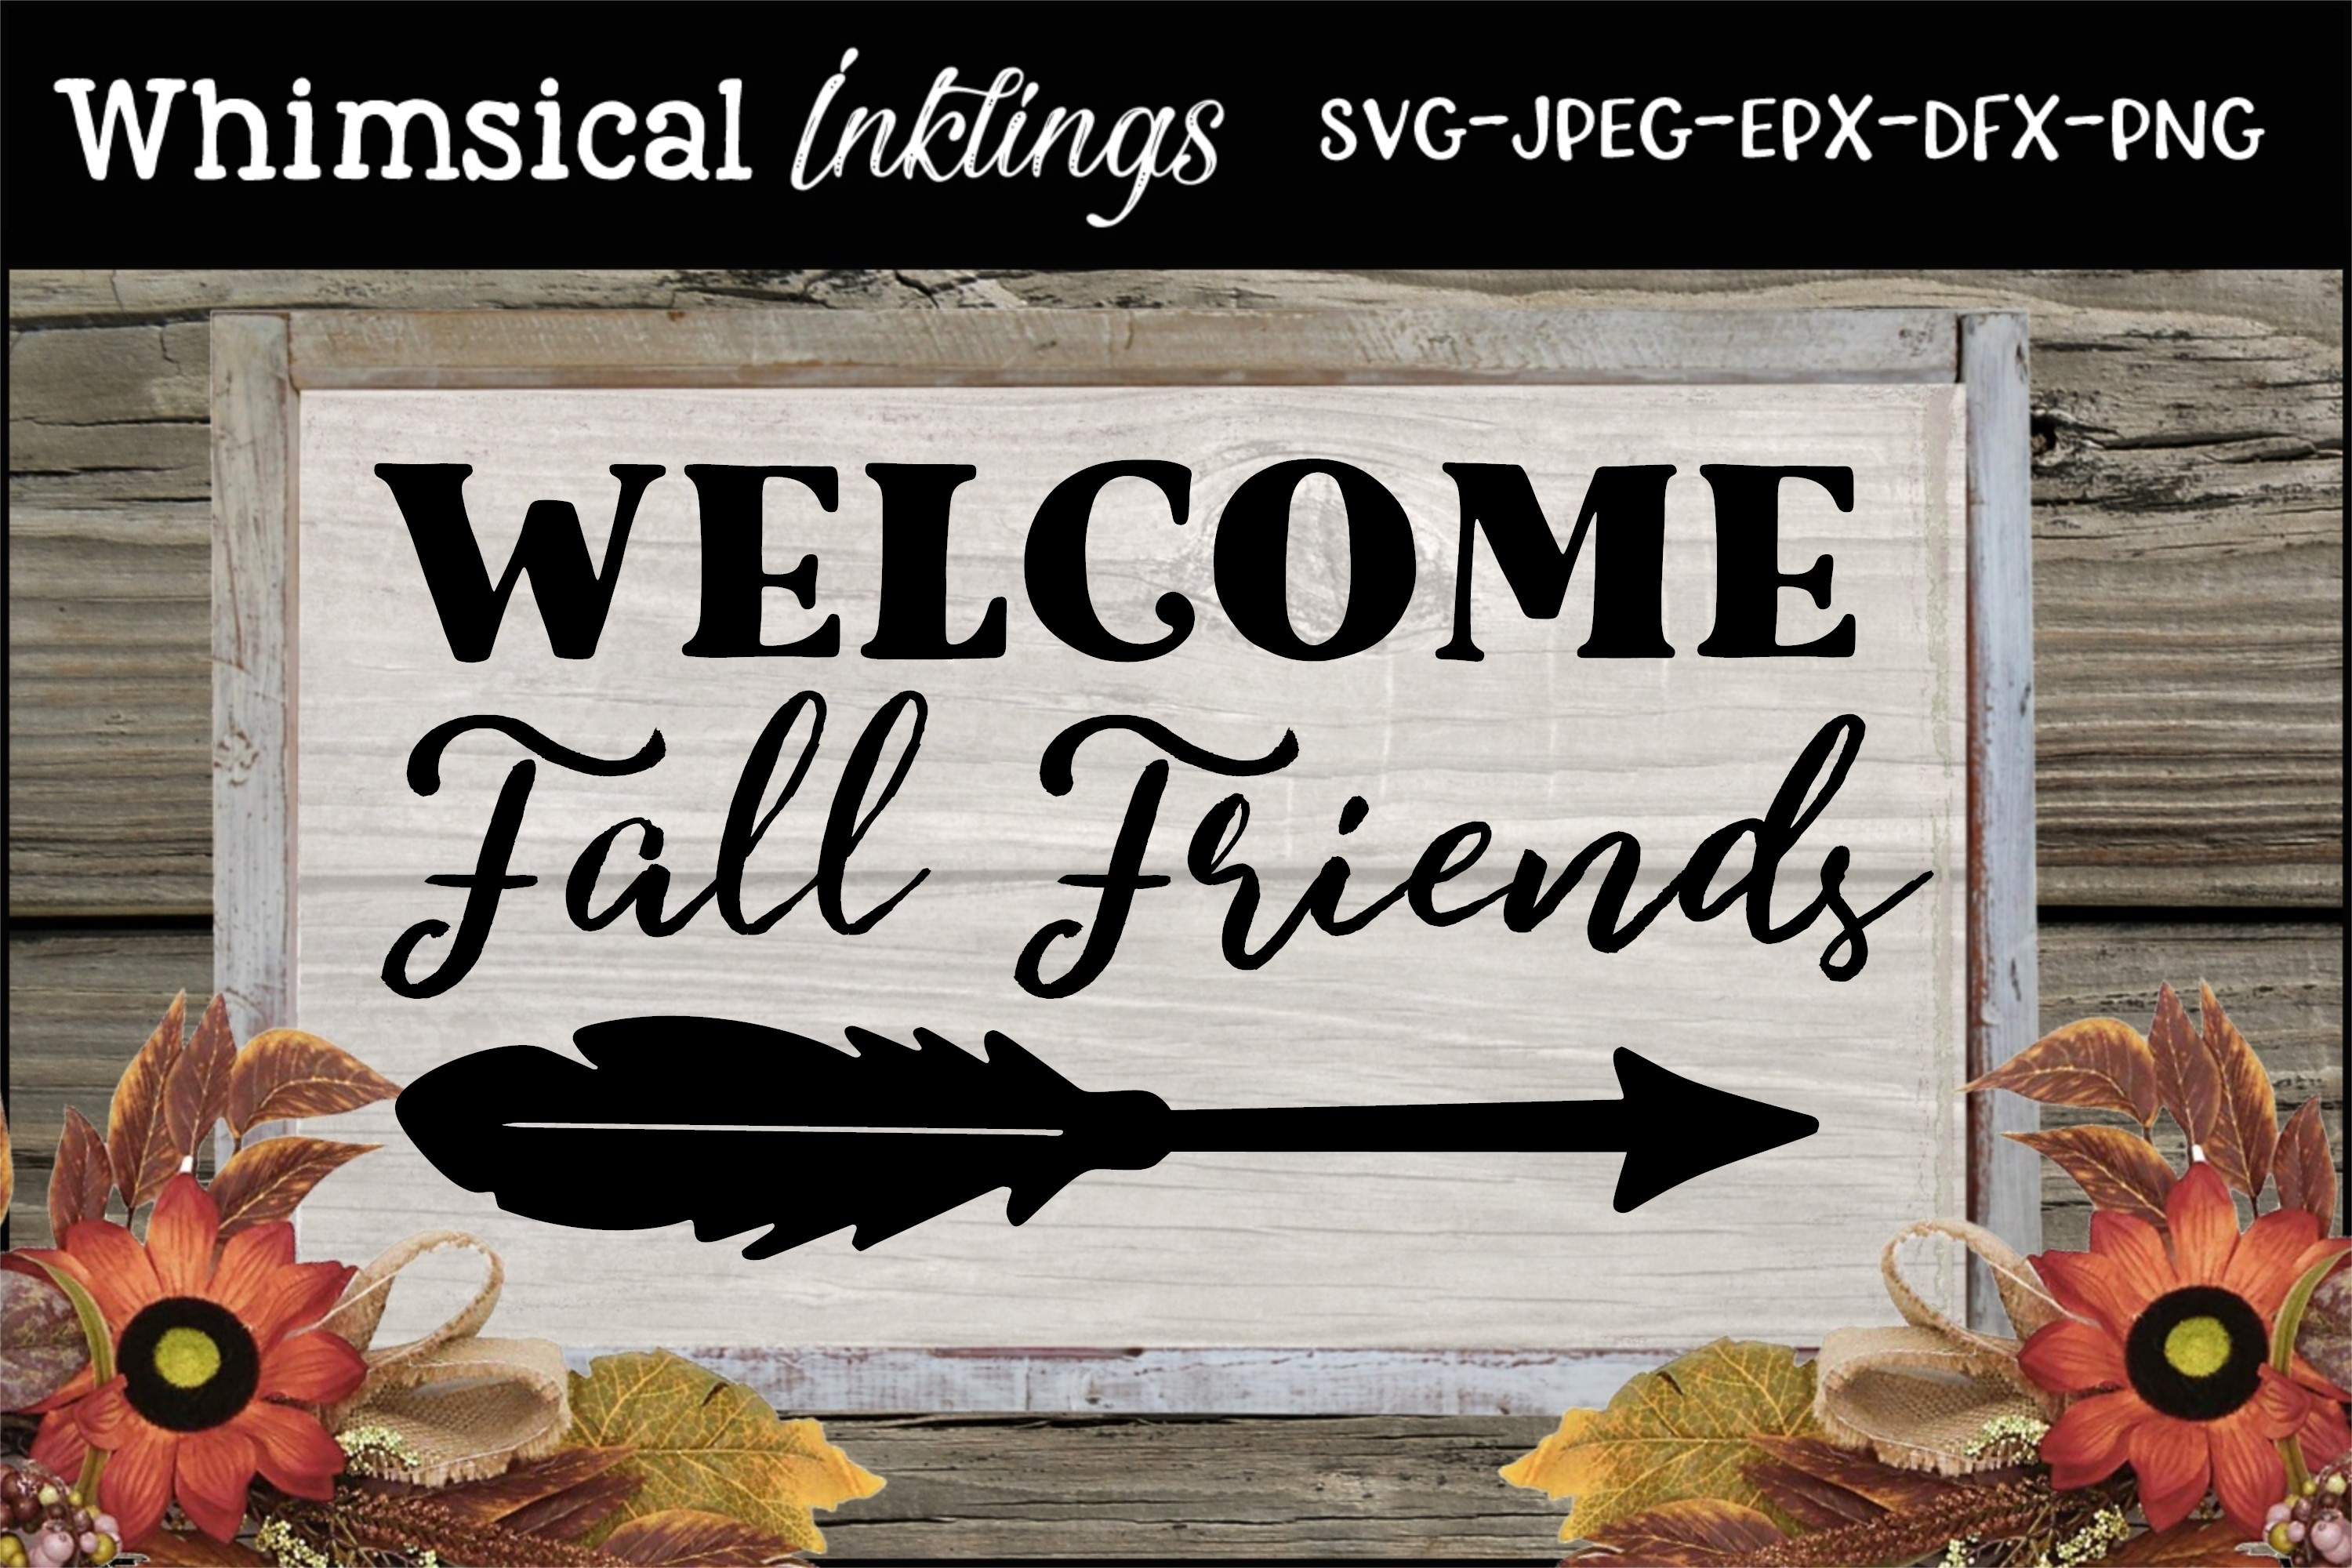 Welcome Fall Friends SVG example image 1